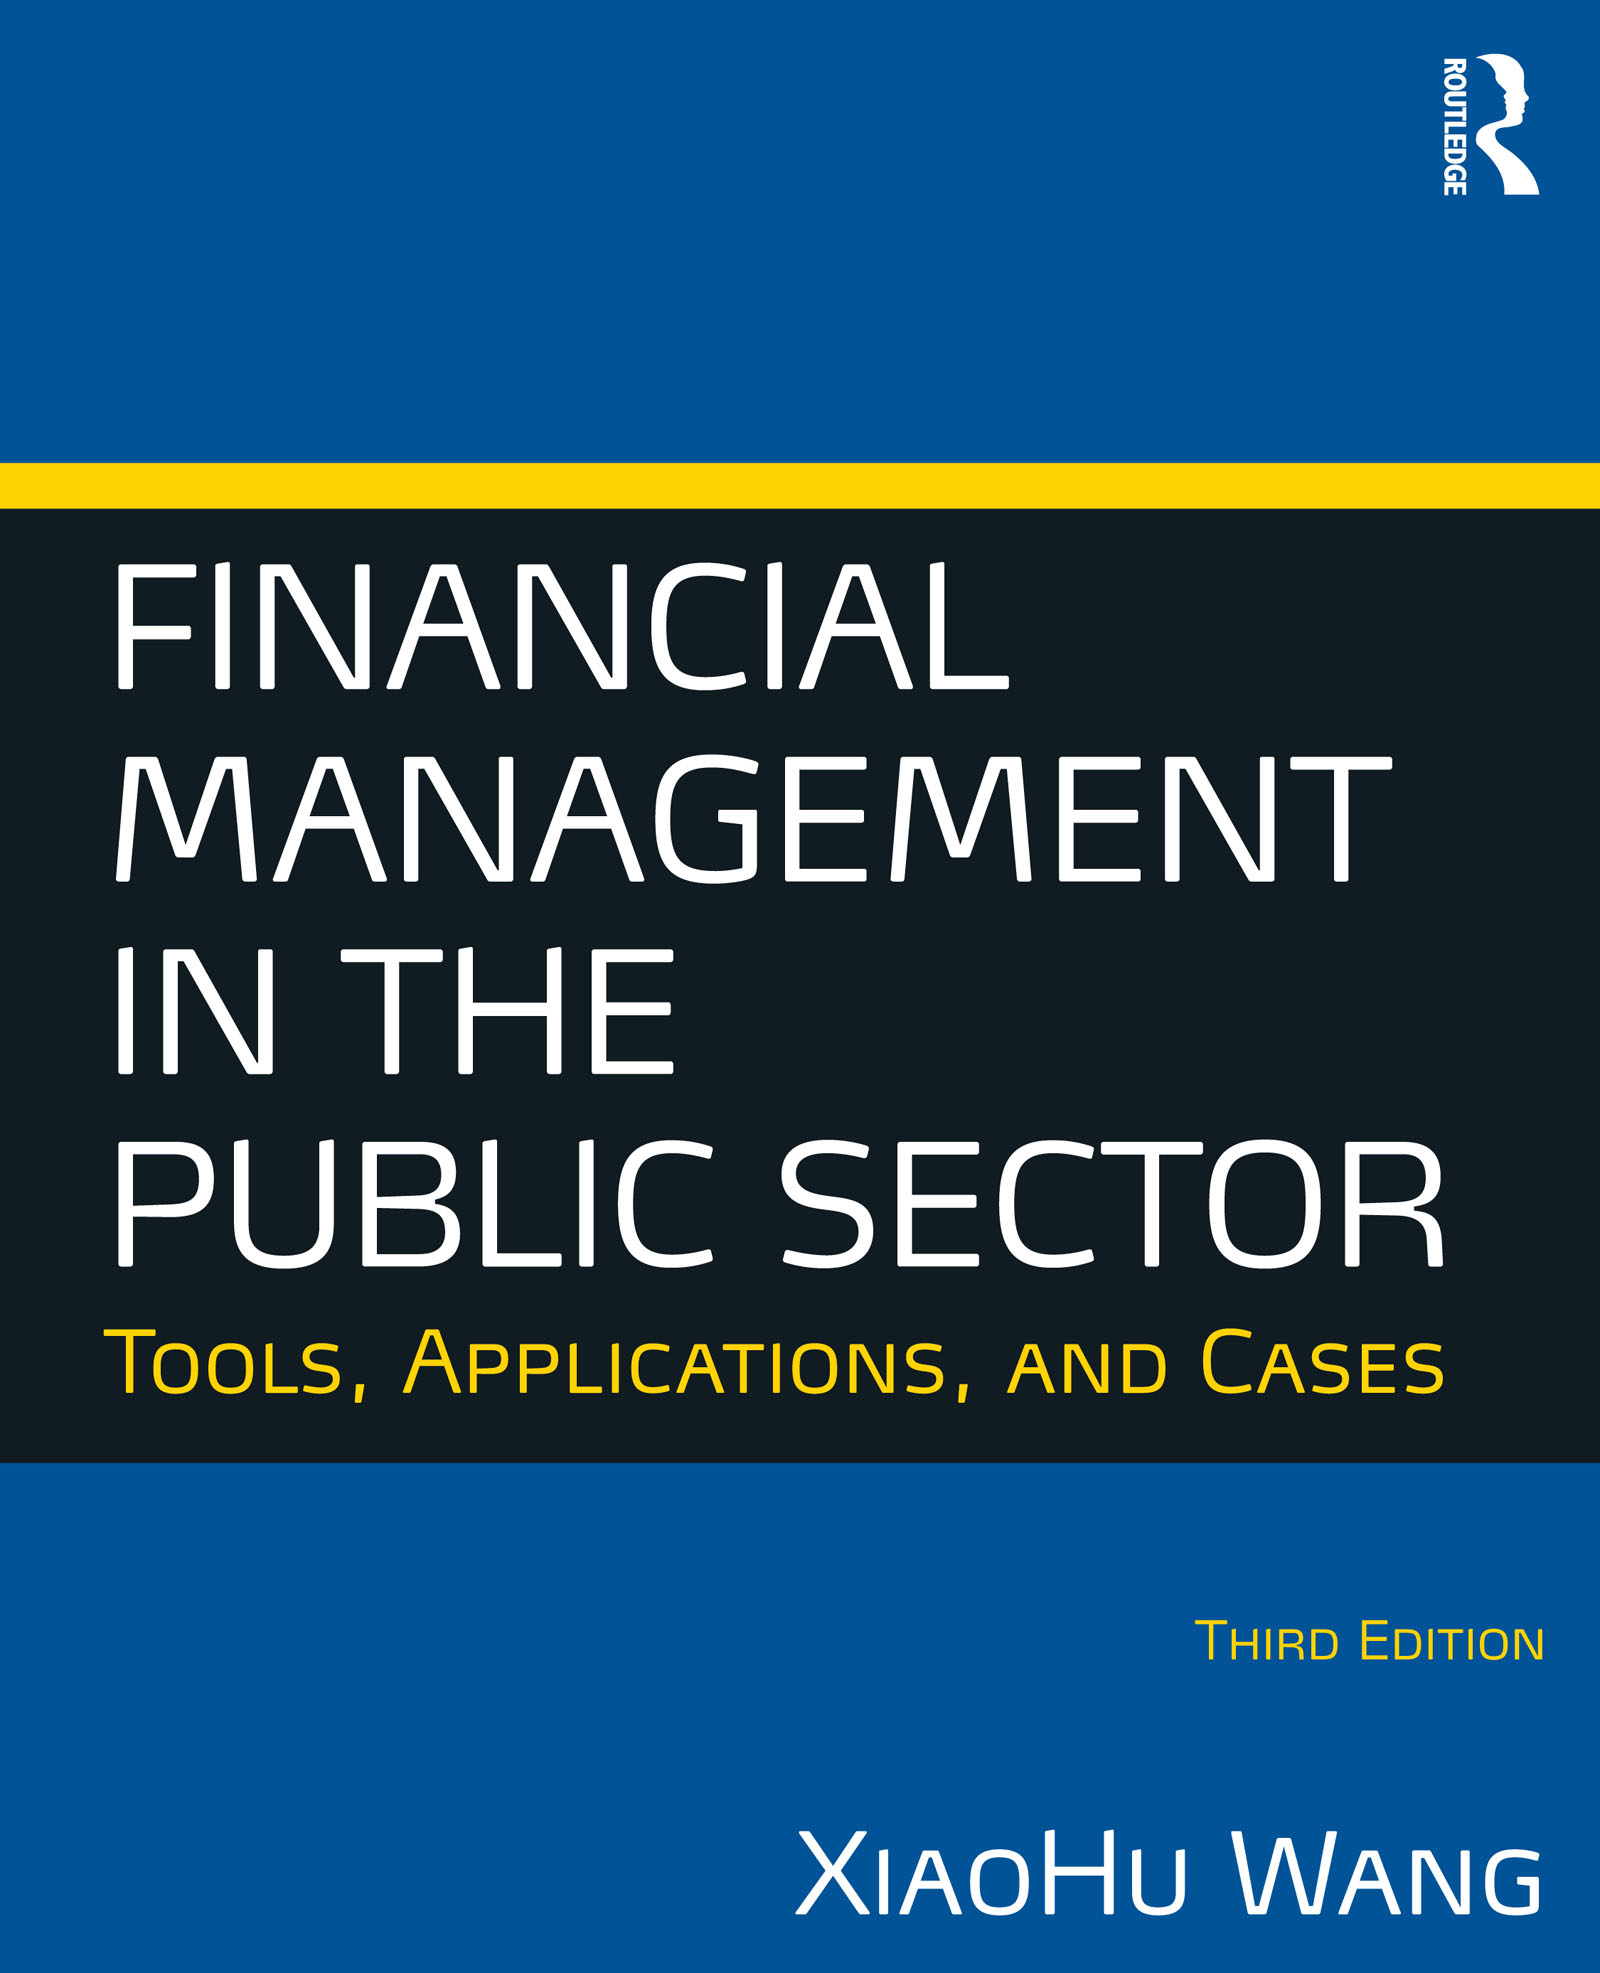 Download Ebook Financial Management in the Public Sector (3rd ed.) by Xiaohu (Shawn) Wang Pdf